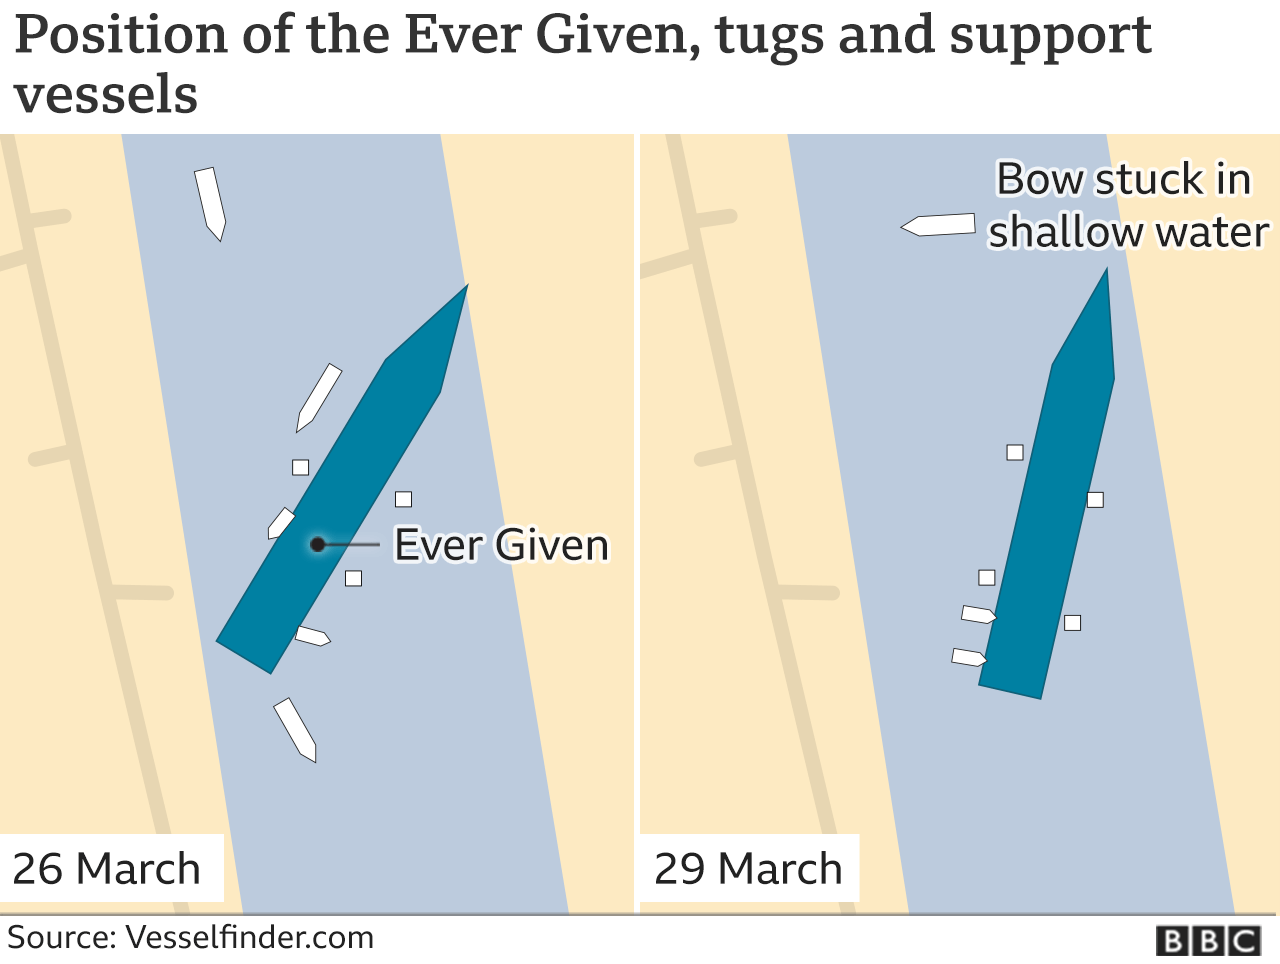 Image shows the change in position of the ship